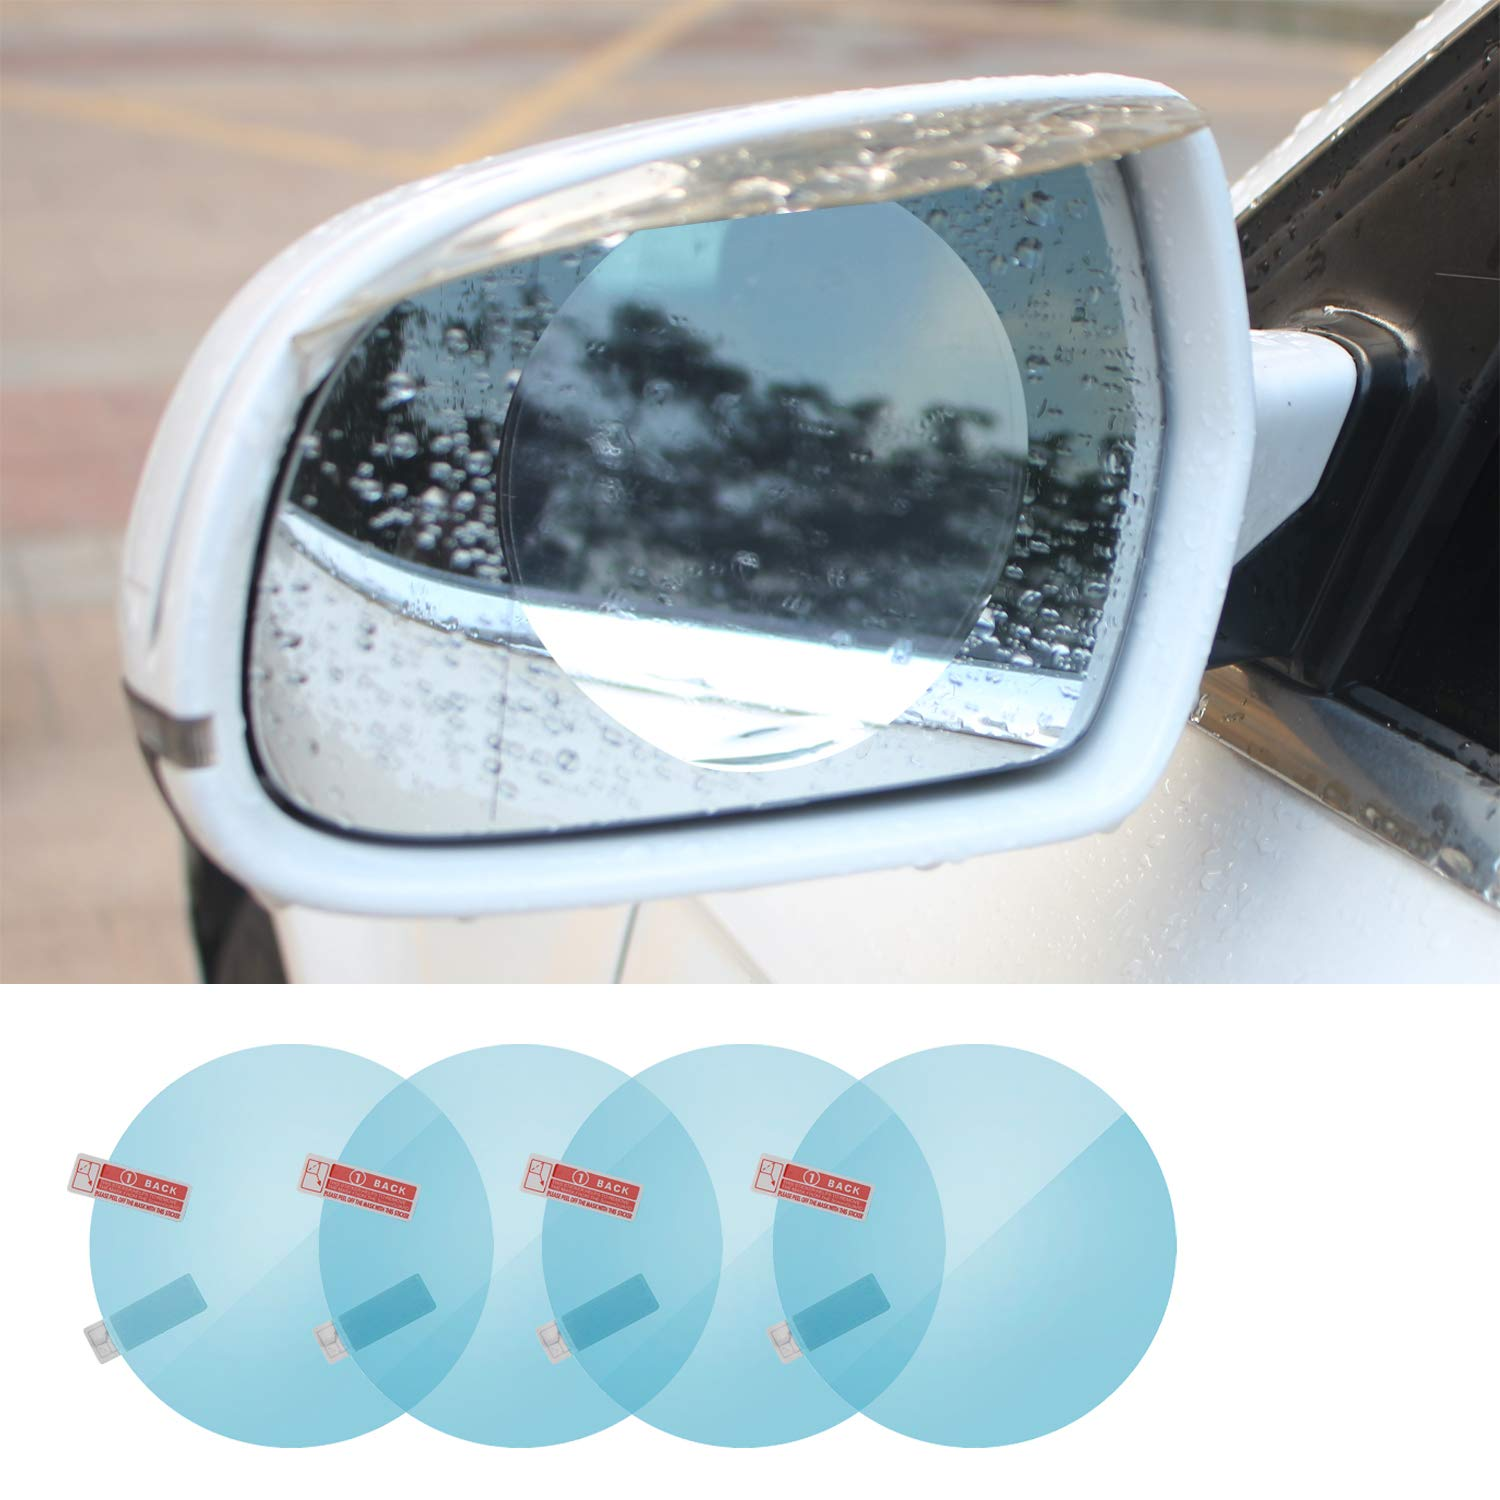 2008 nissan sentra side mirror replacement